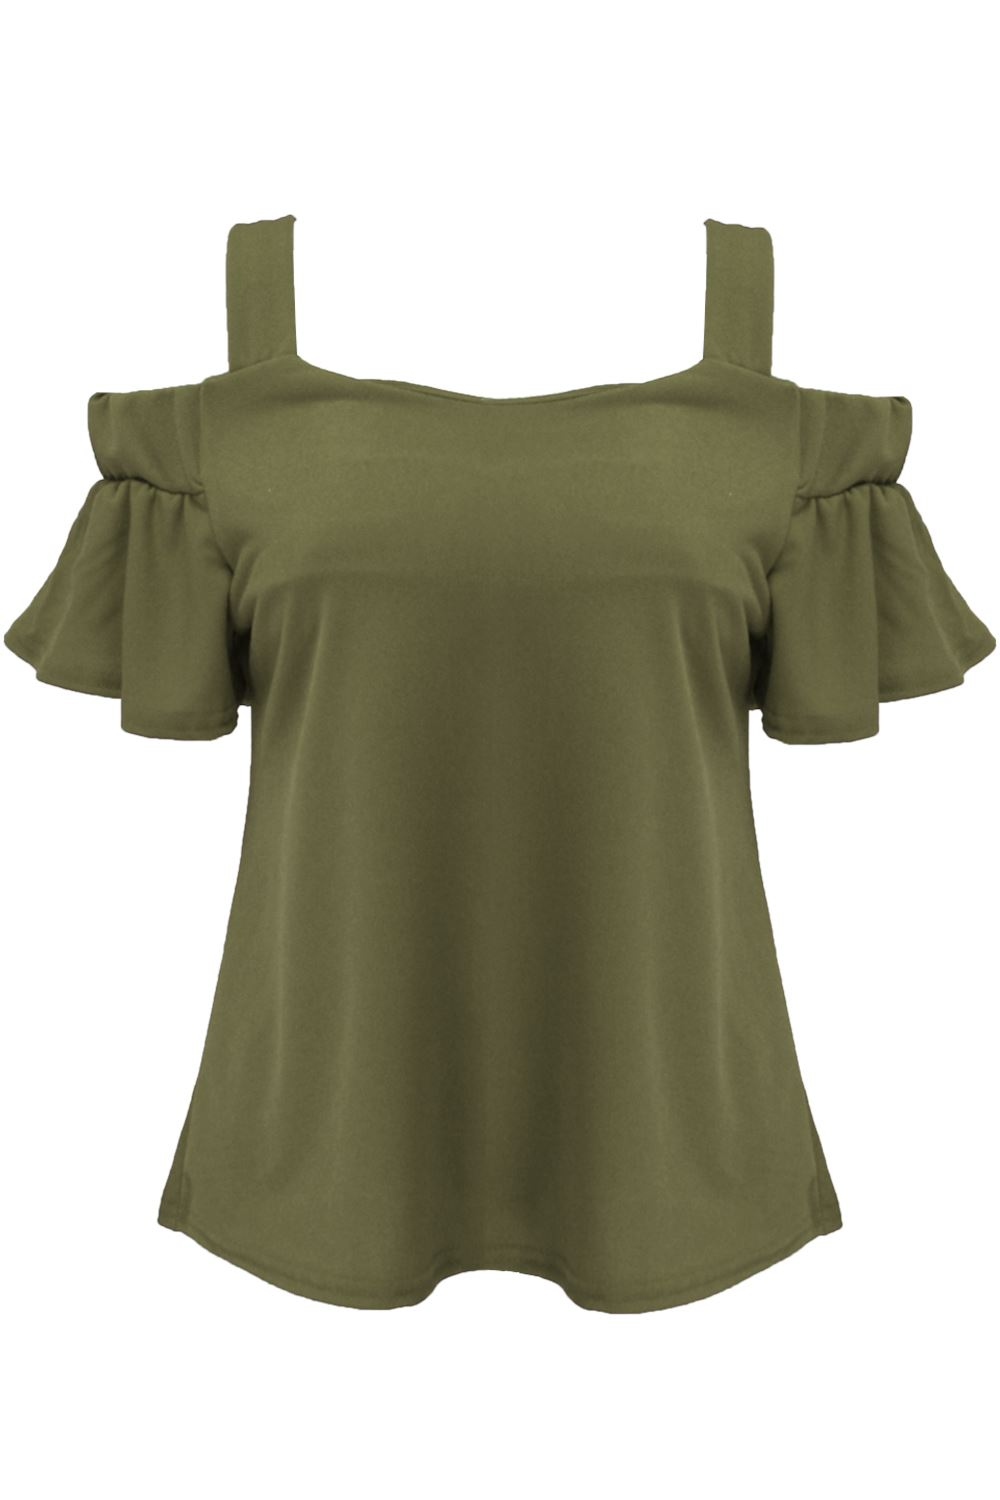 398bb339664d3e Womens Party Strappy Off Cold Shoulder Bardot Top Ladies Bell Sleeve ...